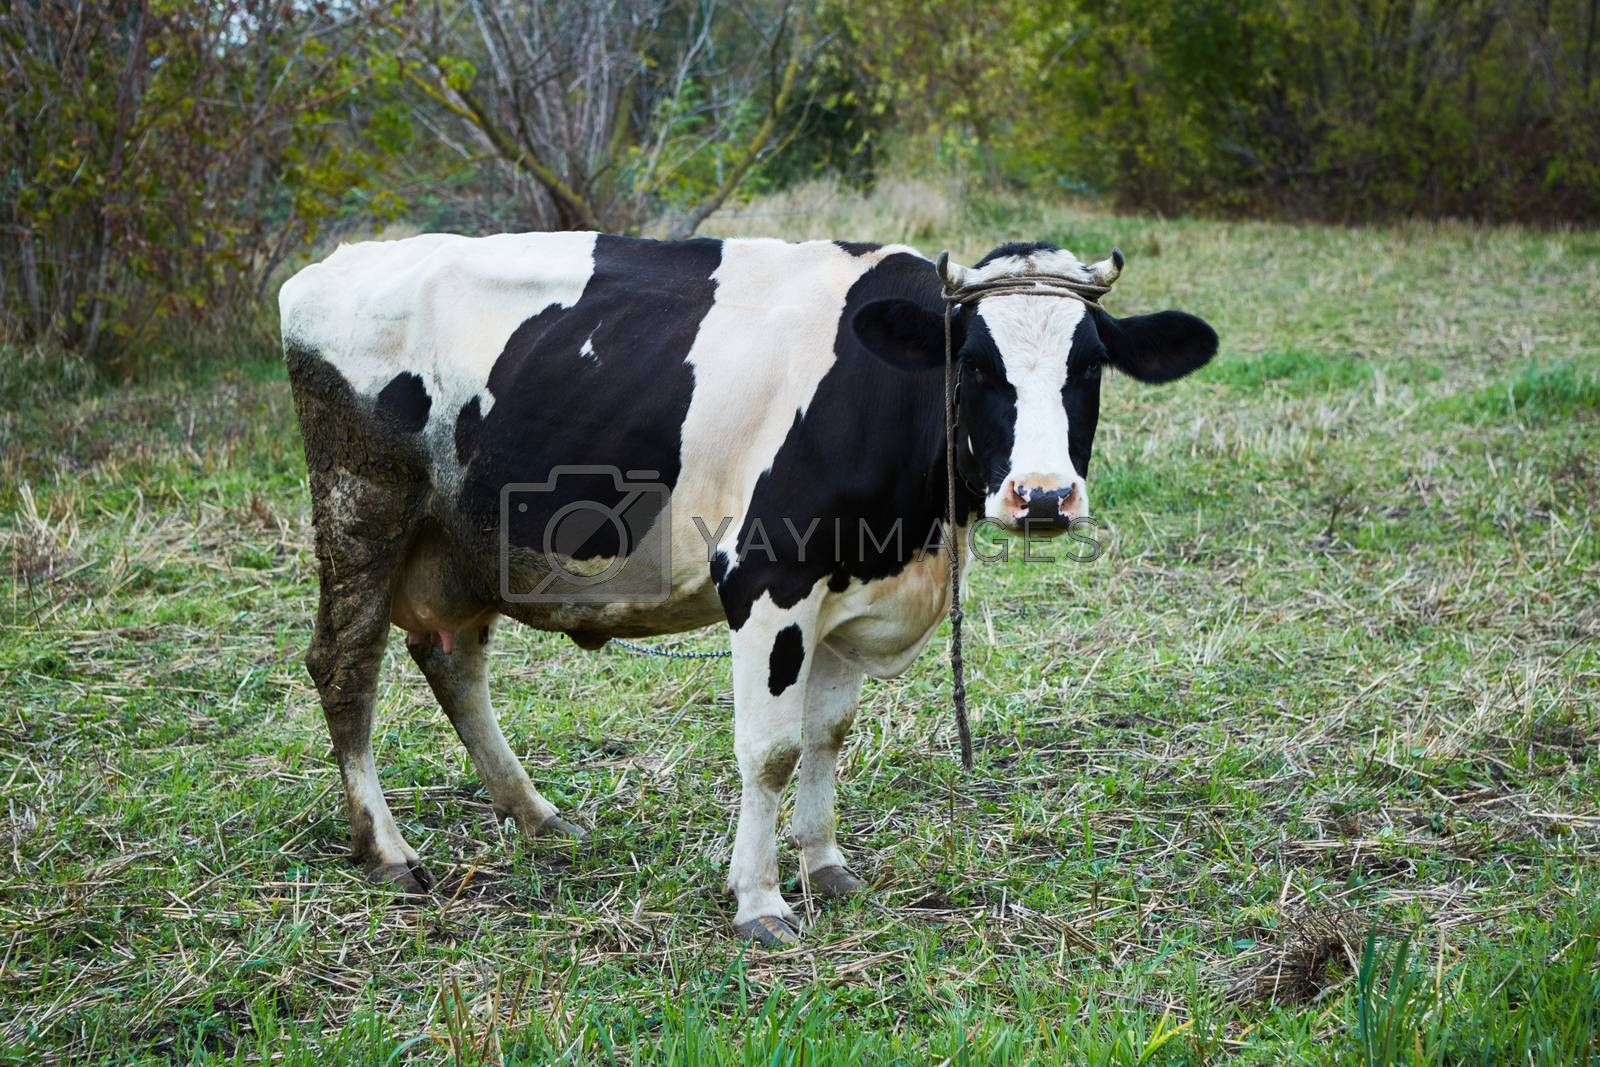 Dairy cow at countryside. Dairy Cow. A curious dairy cow